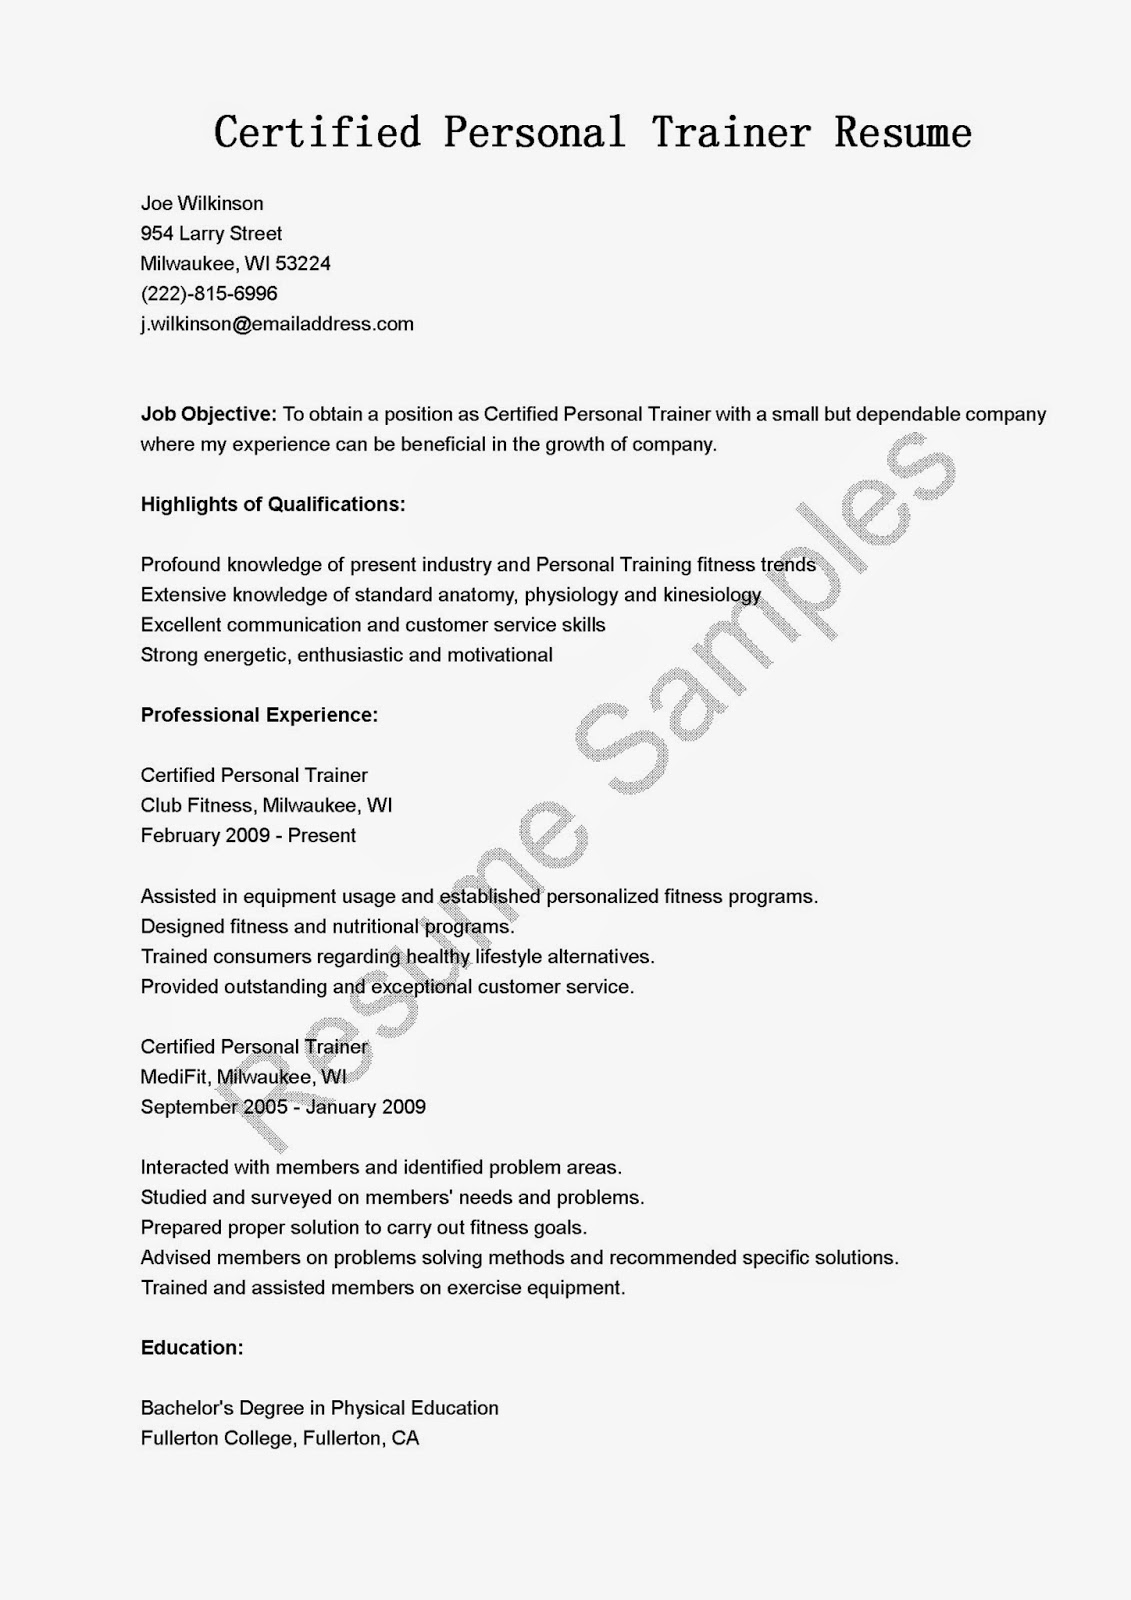 certified personal trainer resume sample